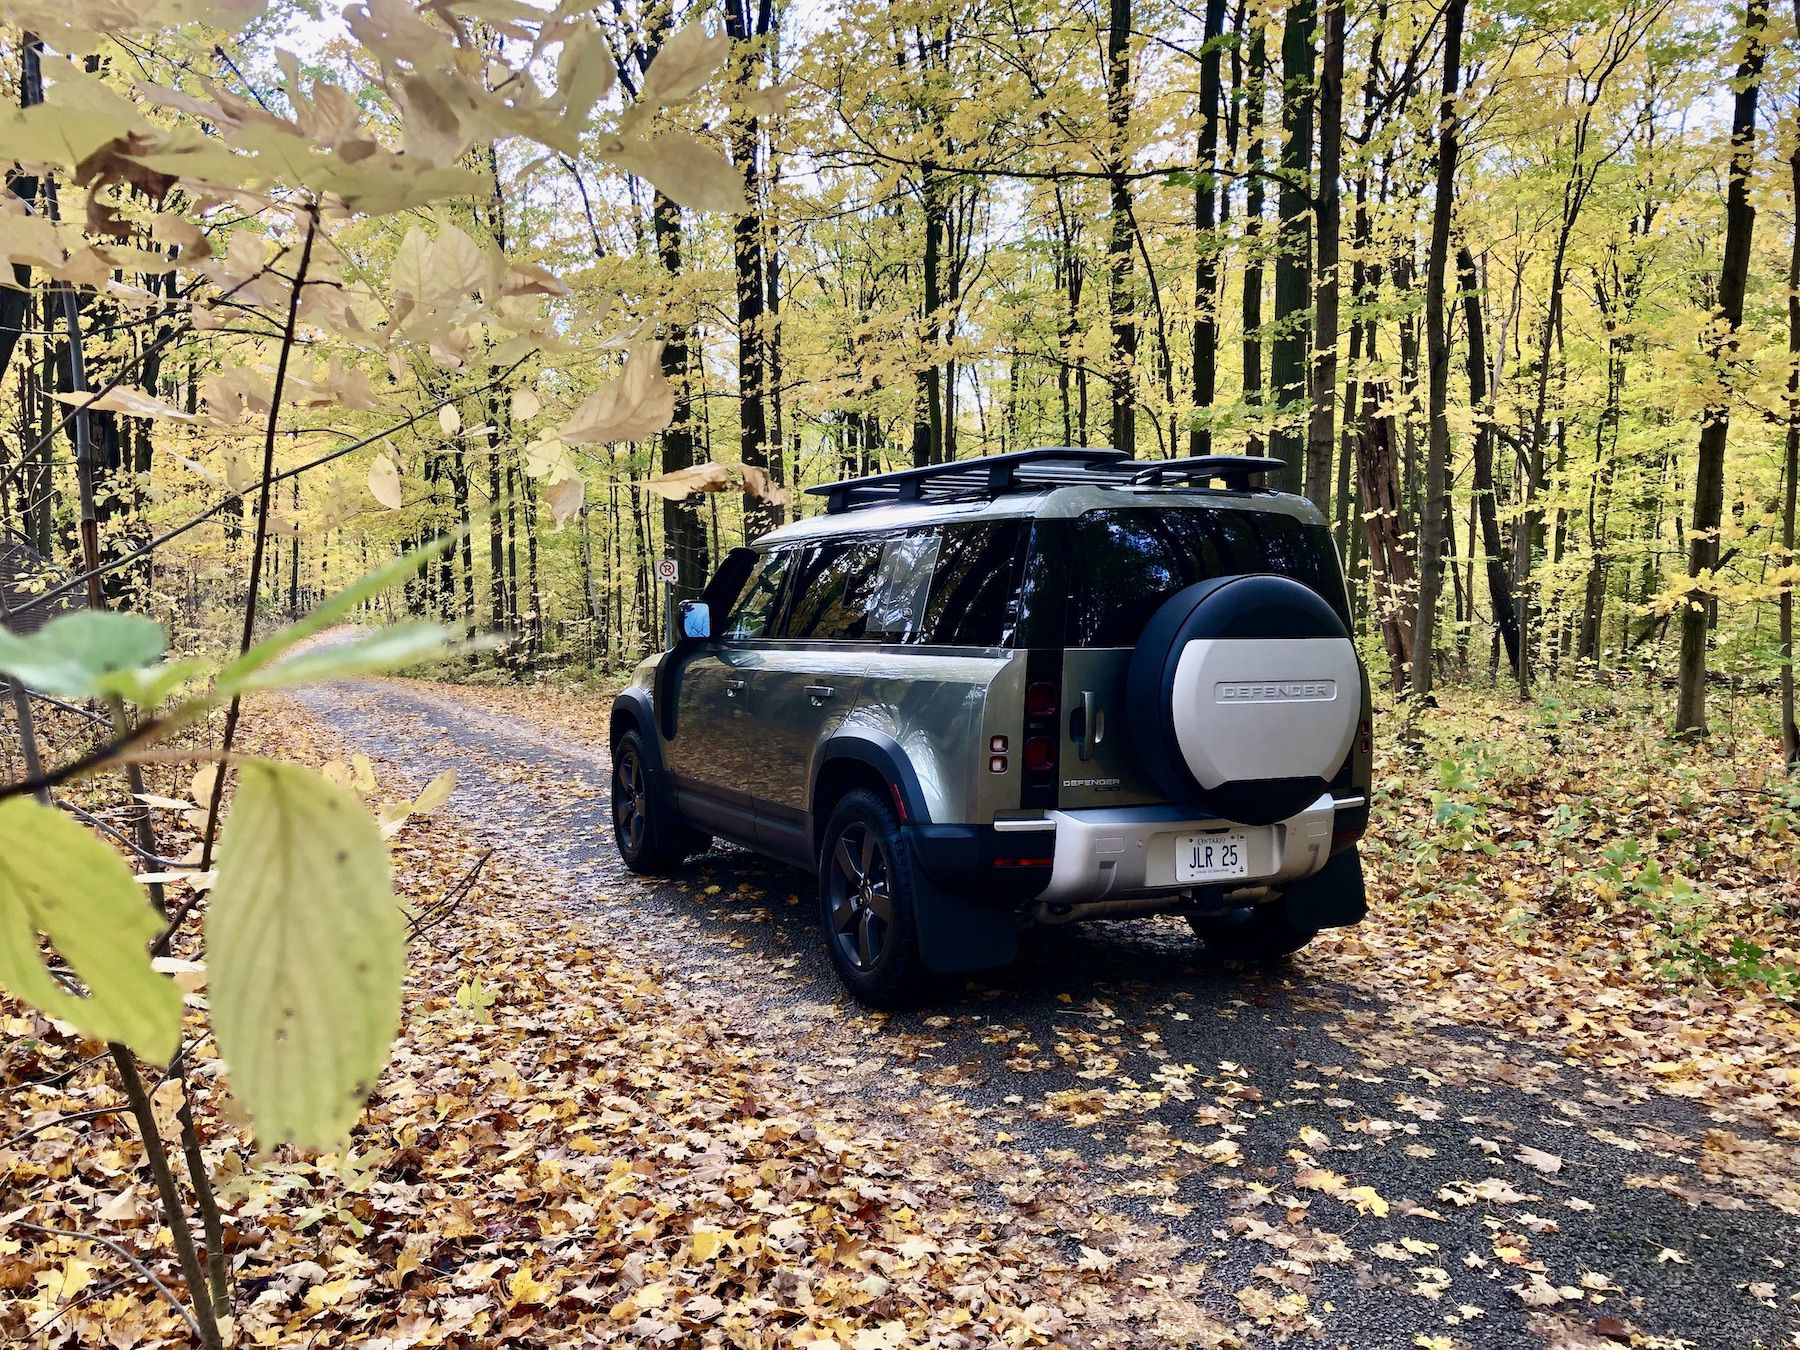 Land Rover Defender at Rattlesnake Point